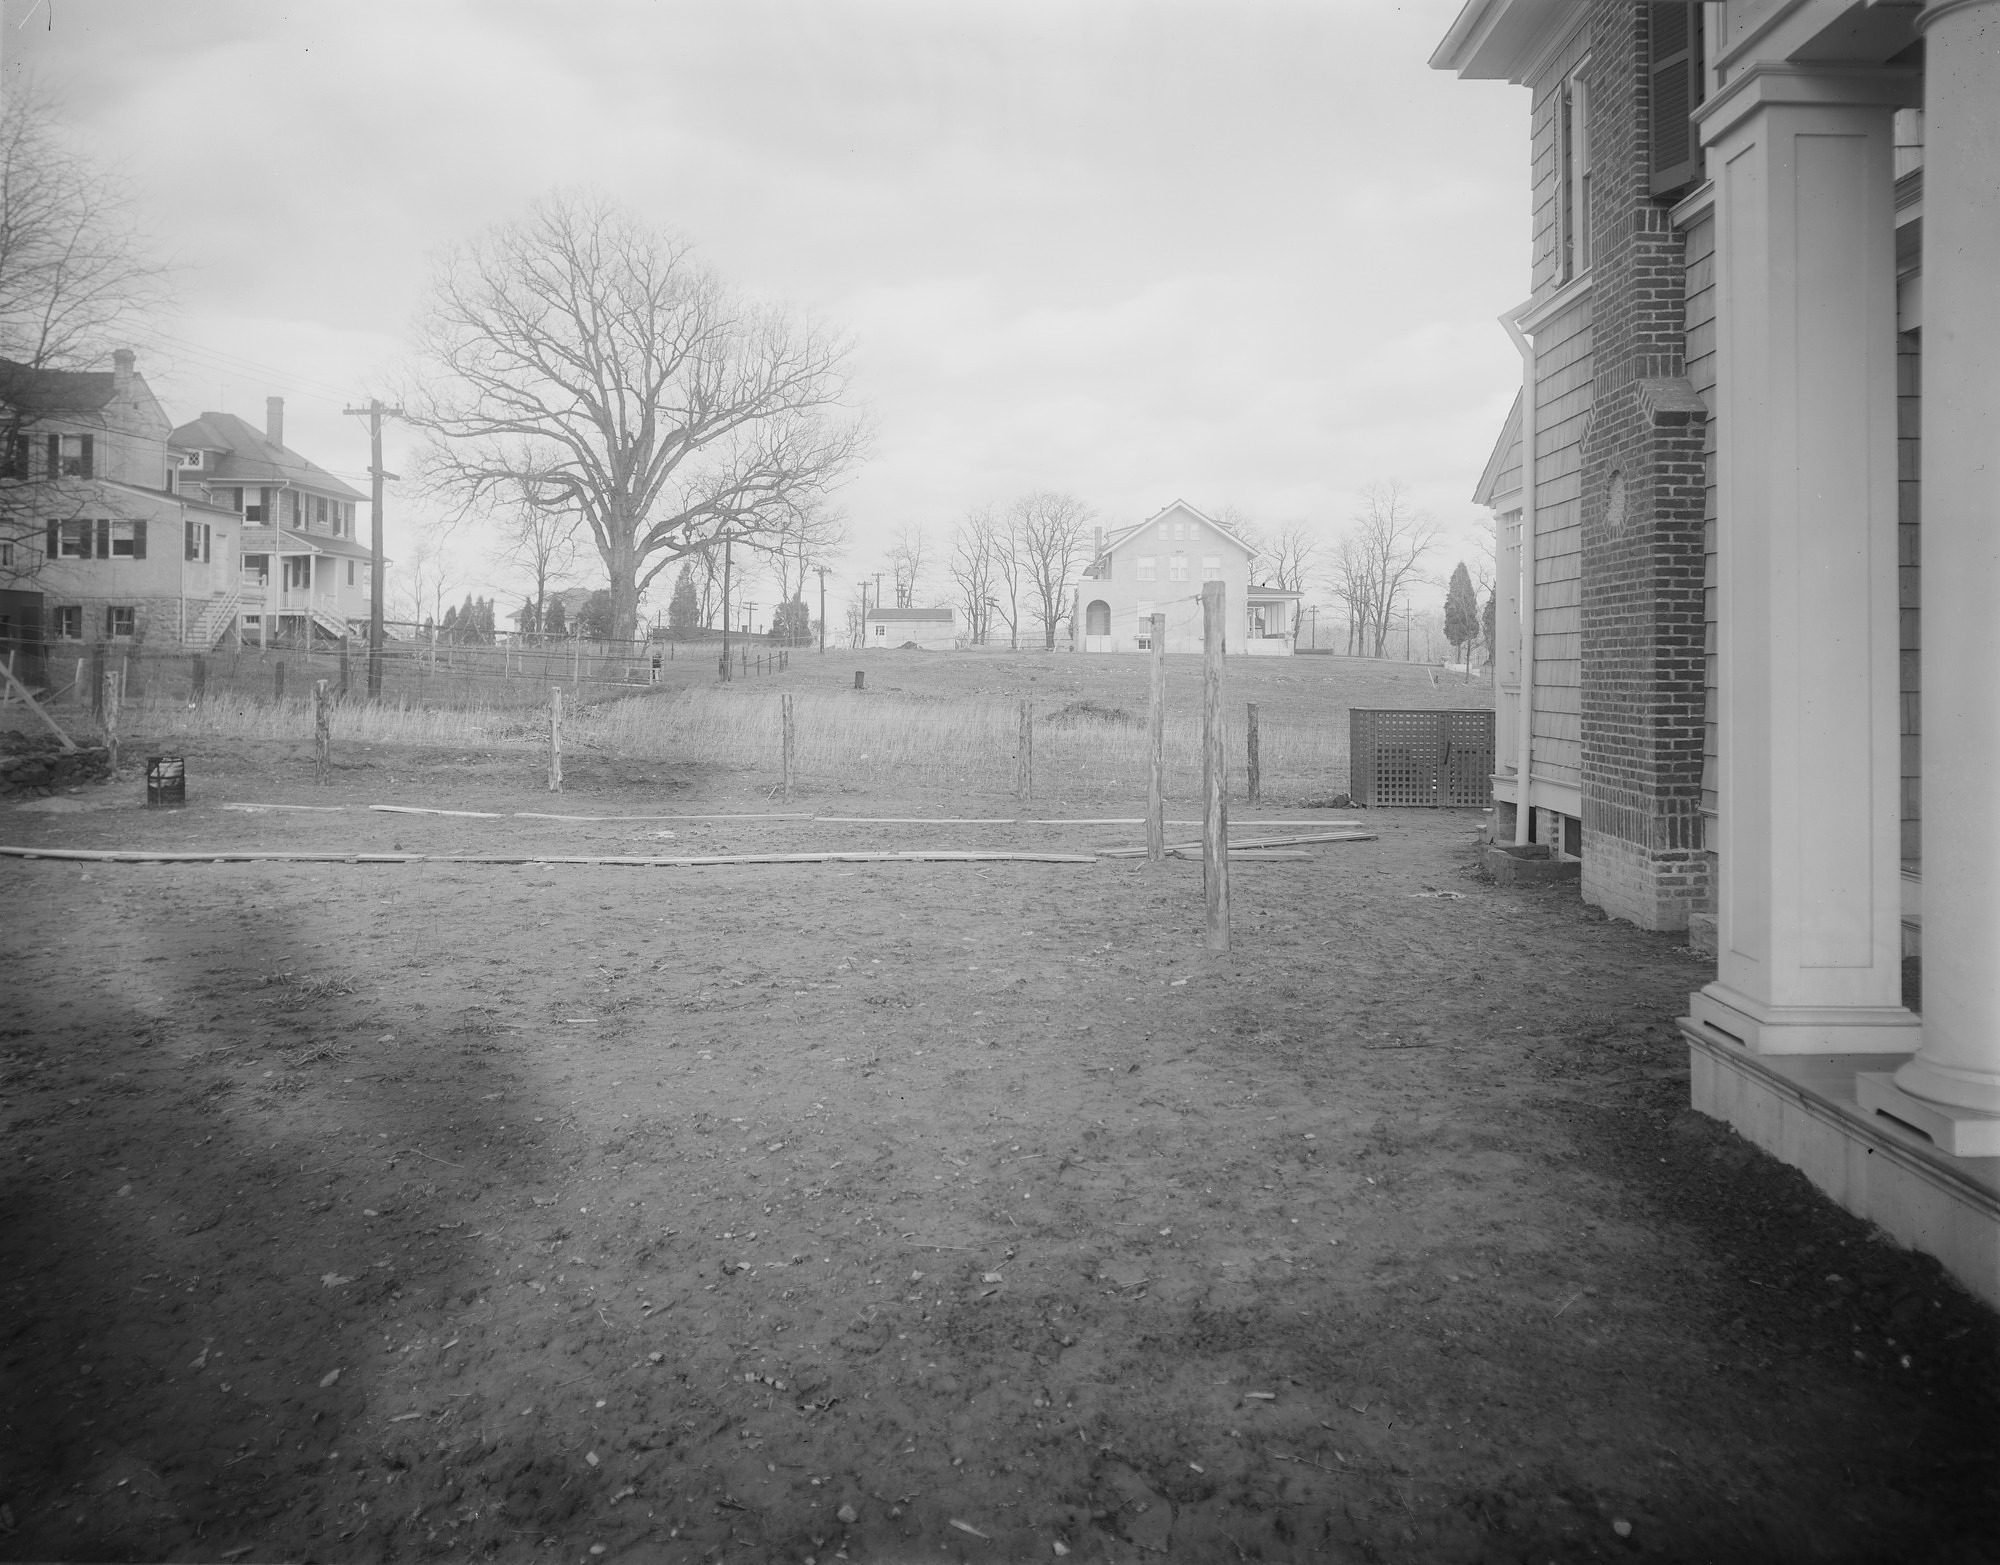 [Ogilby Garden]: looking toward adjacent properties, with back of house on right.